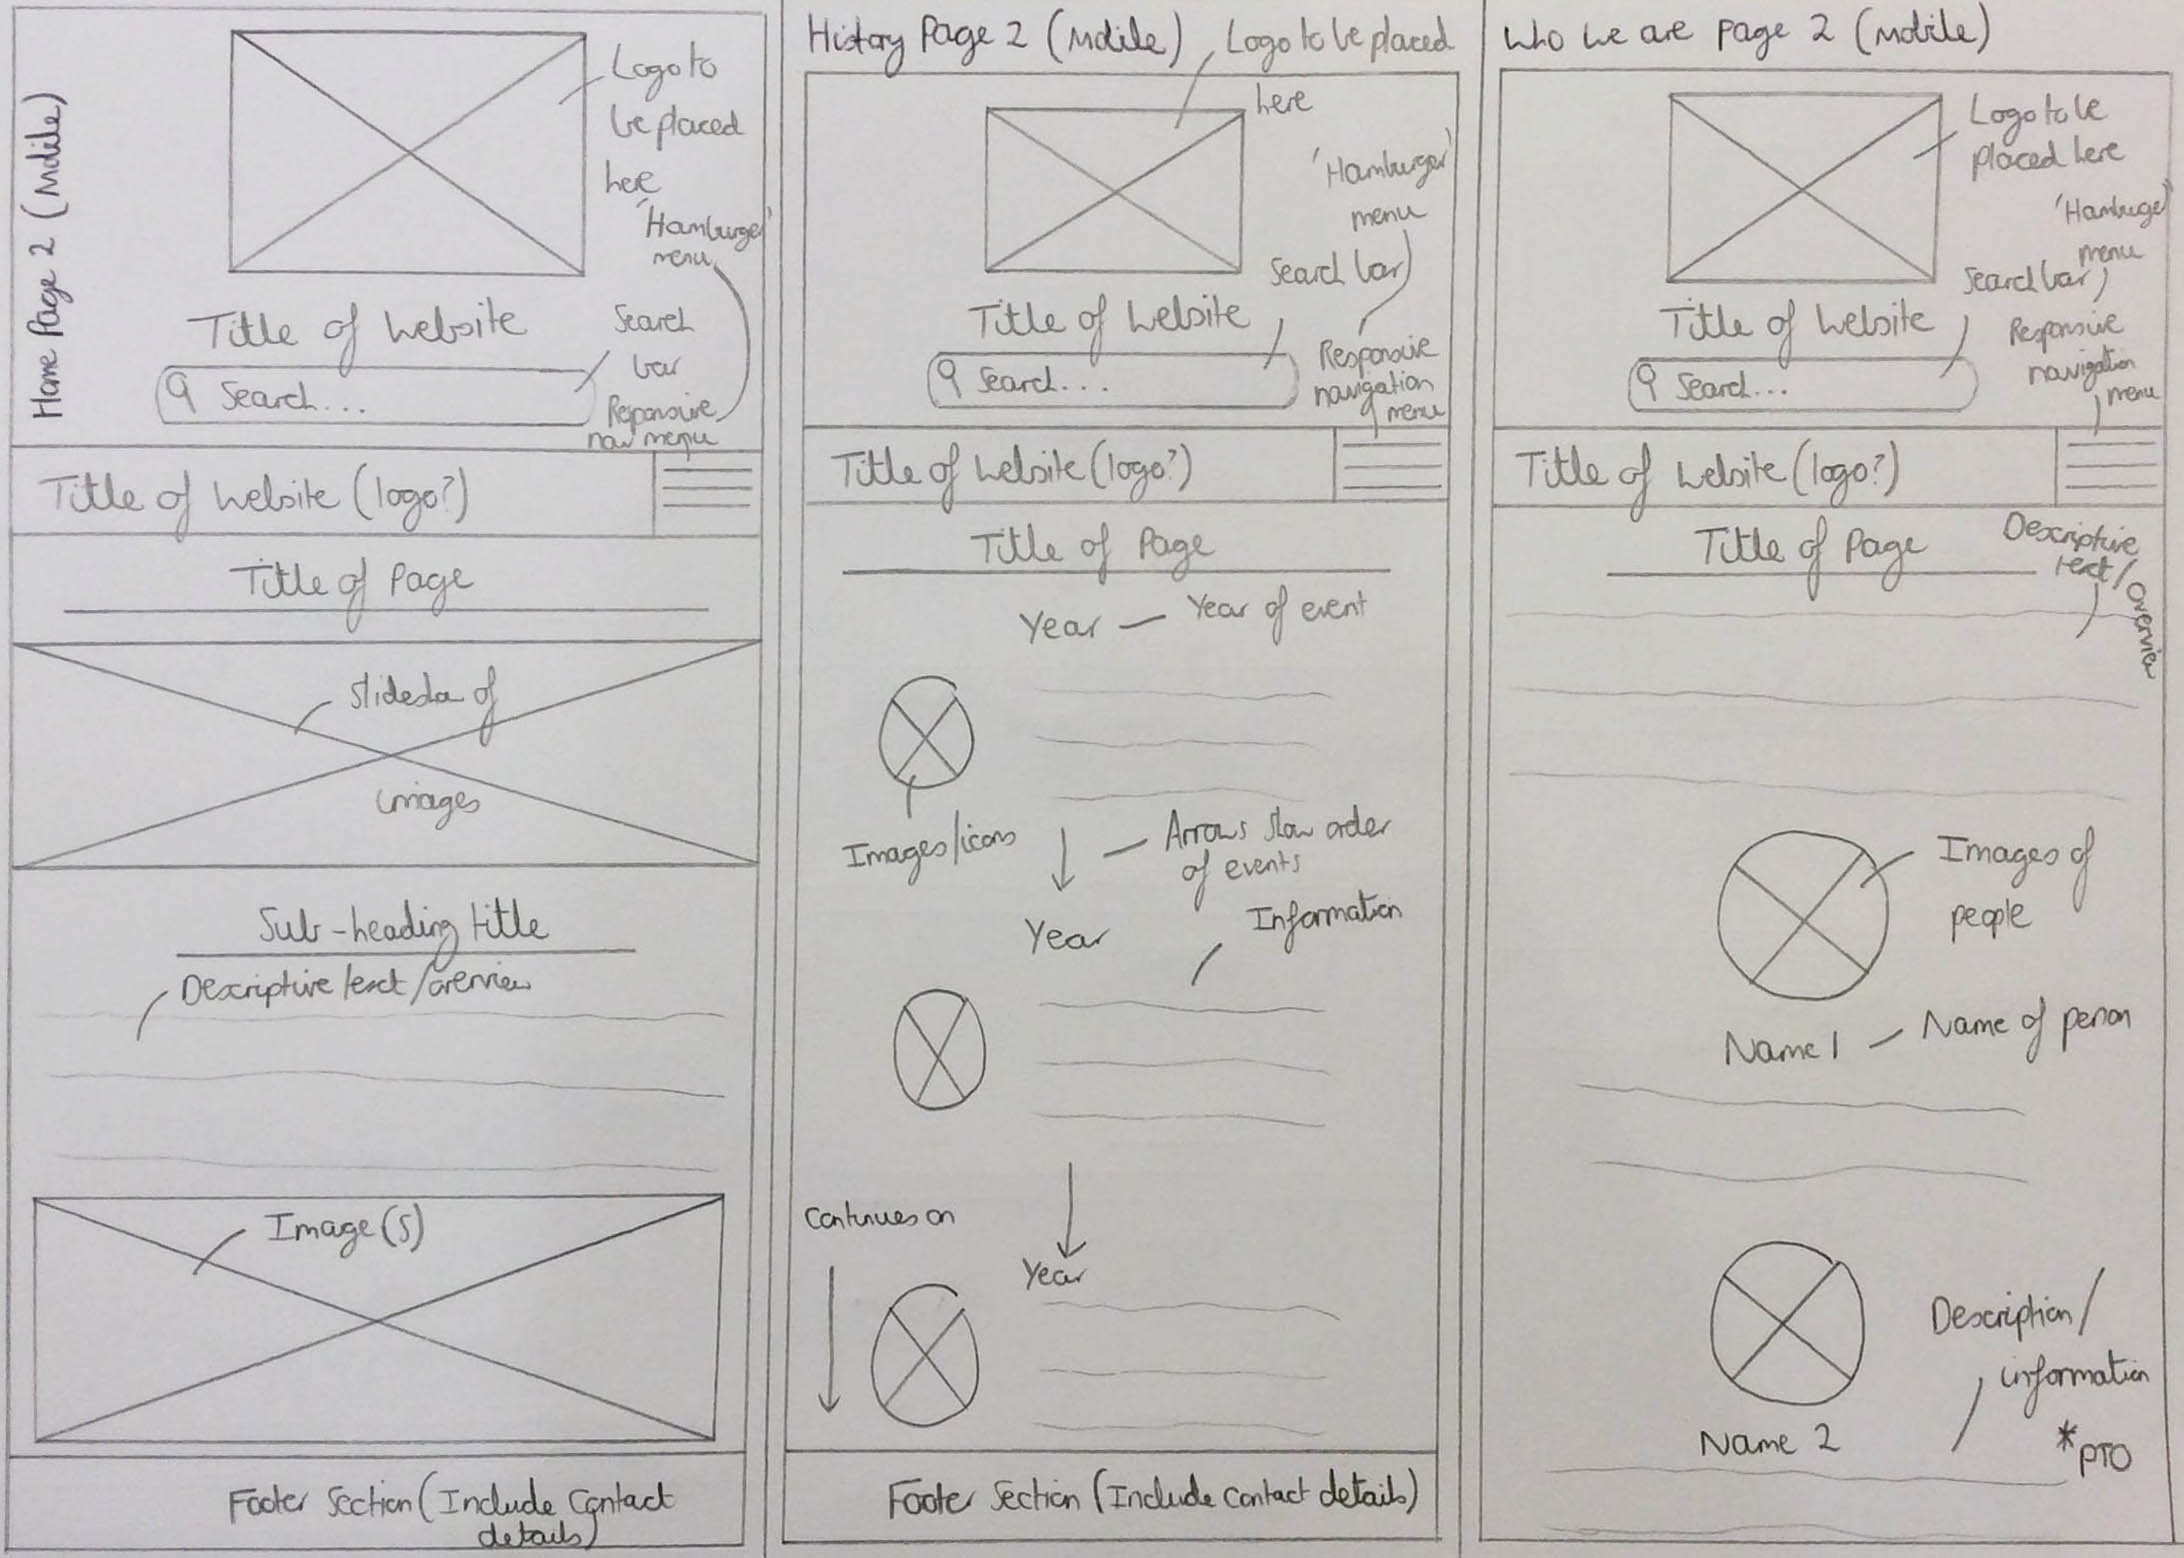 The Sketched Home, History and 'Who We Are' (Part 1) Pages Wireframes